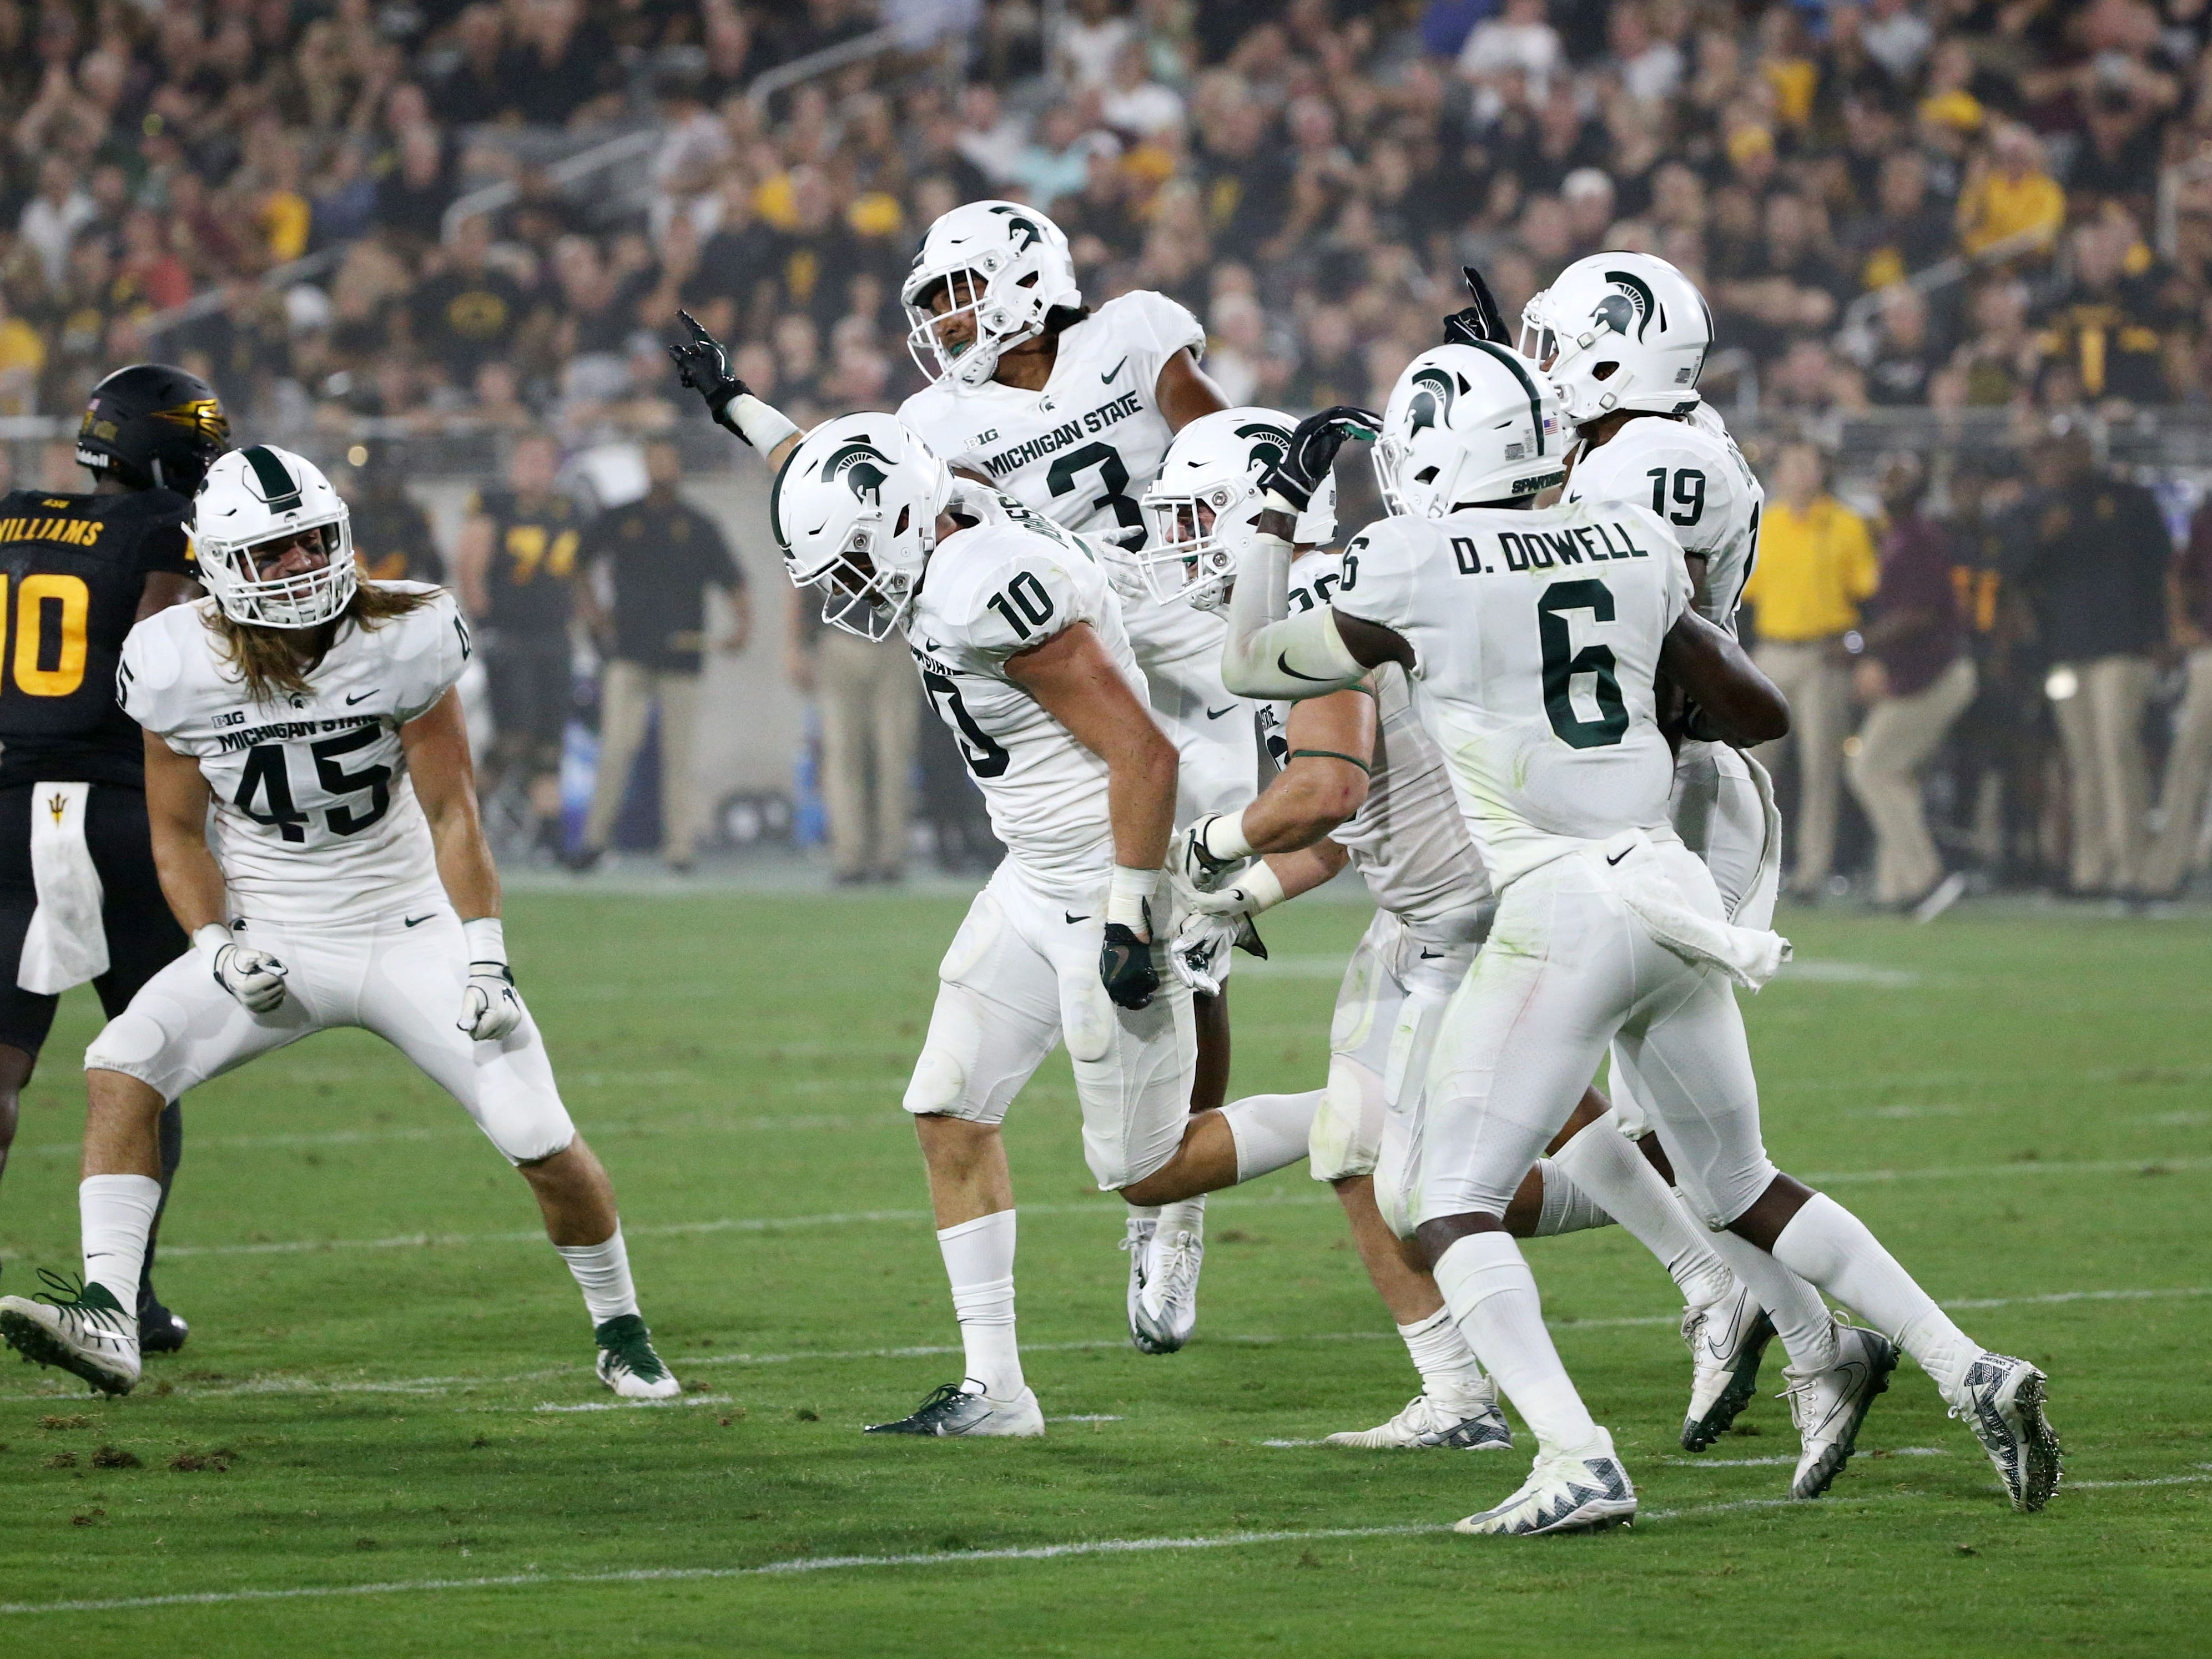 Michigan State safety Matt Morrissey (10) celebrates his interception against Arizona State in the first half on Sep. 8, 2018, at Sun Devil Stadium.